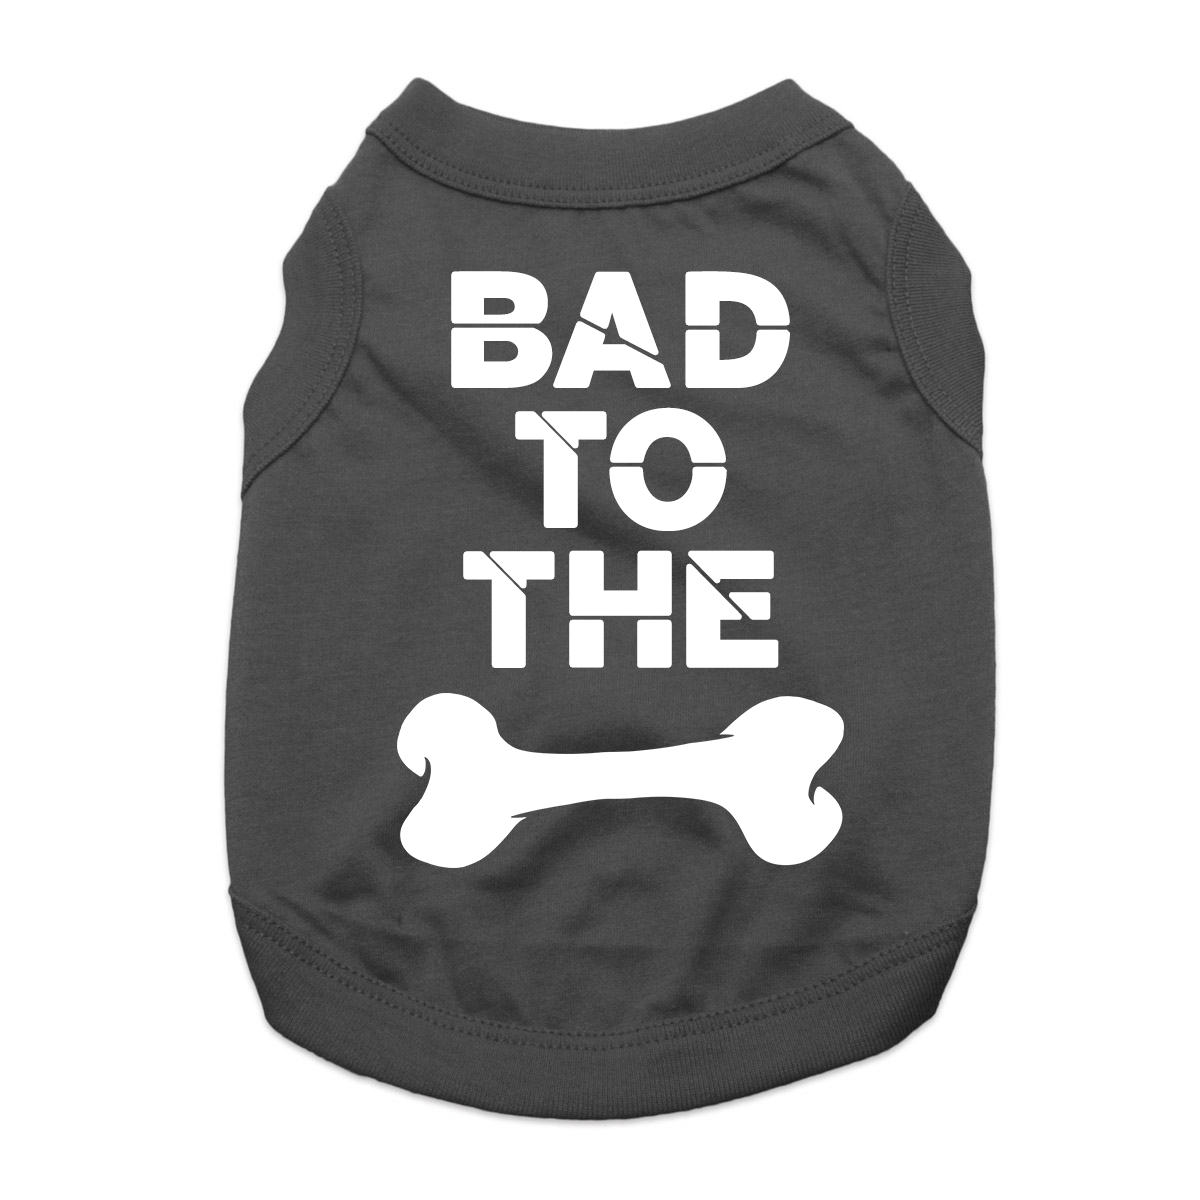 Bad to the Bone Dog Shirt Black with Same Day Shipping